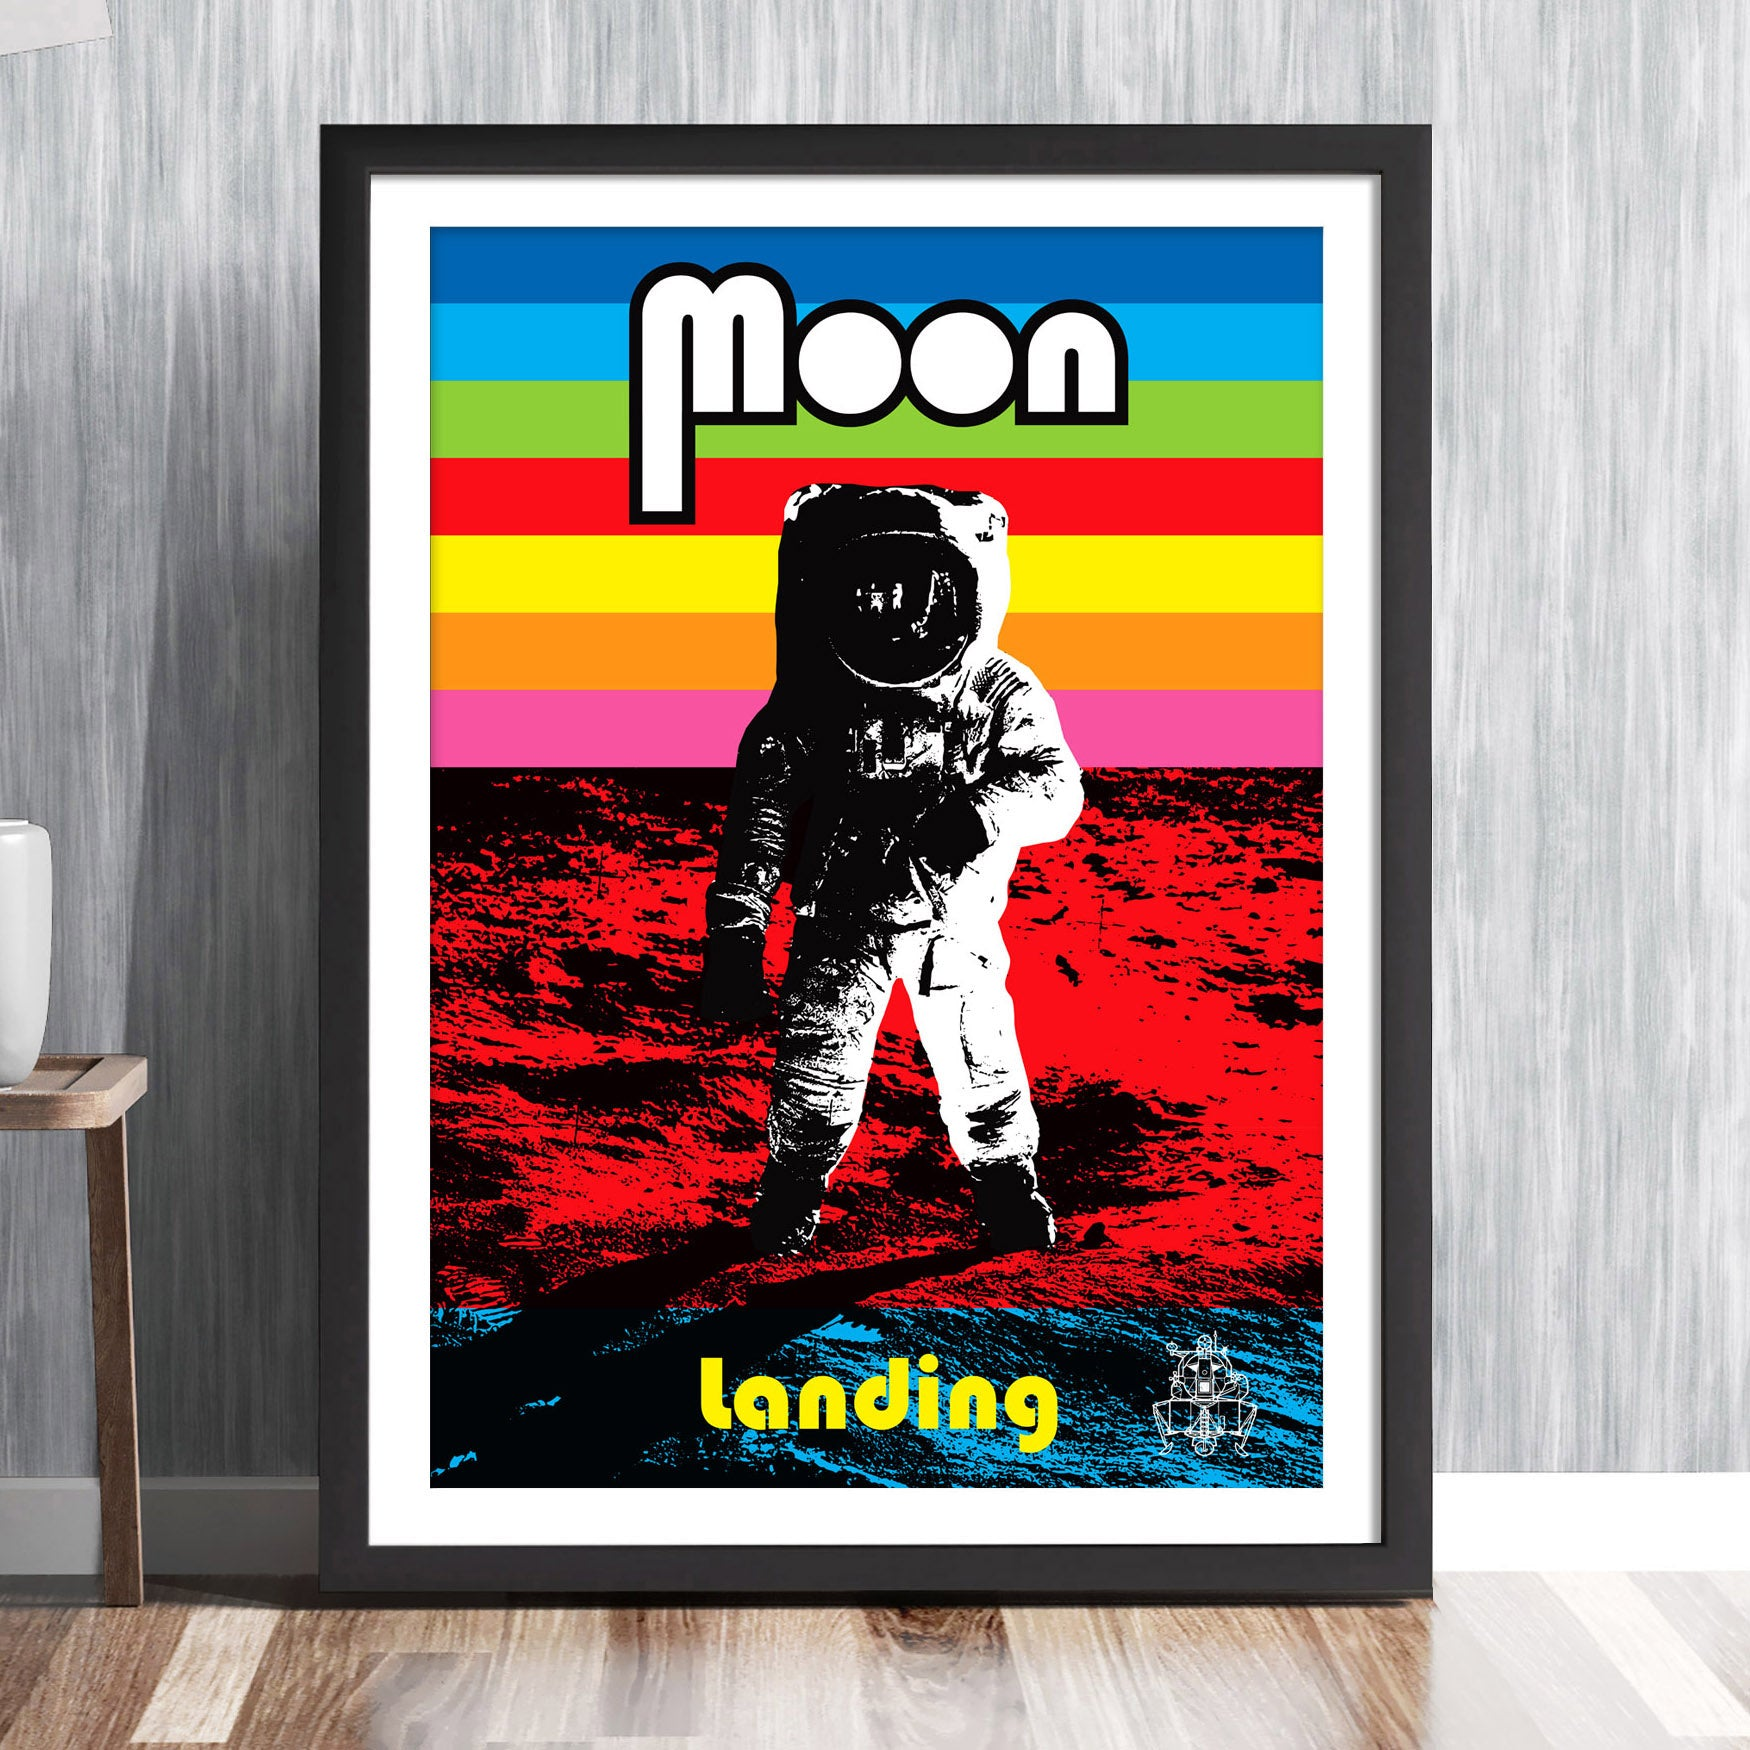 'MOON LANDING' Commemorative print - Apollo 11 NASA space mission Astronaut 1969 Buzz Aldrin Neil Armstrong Michael Collins solar system travel planets astronomy gallery art print - 'Unframed'